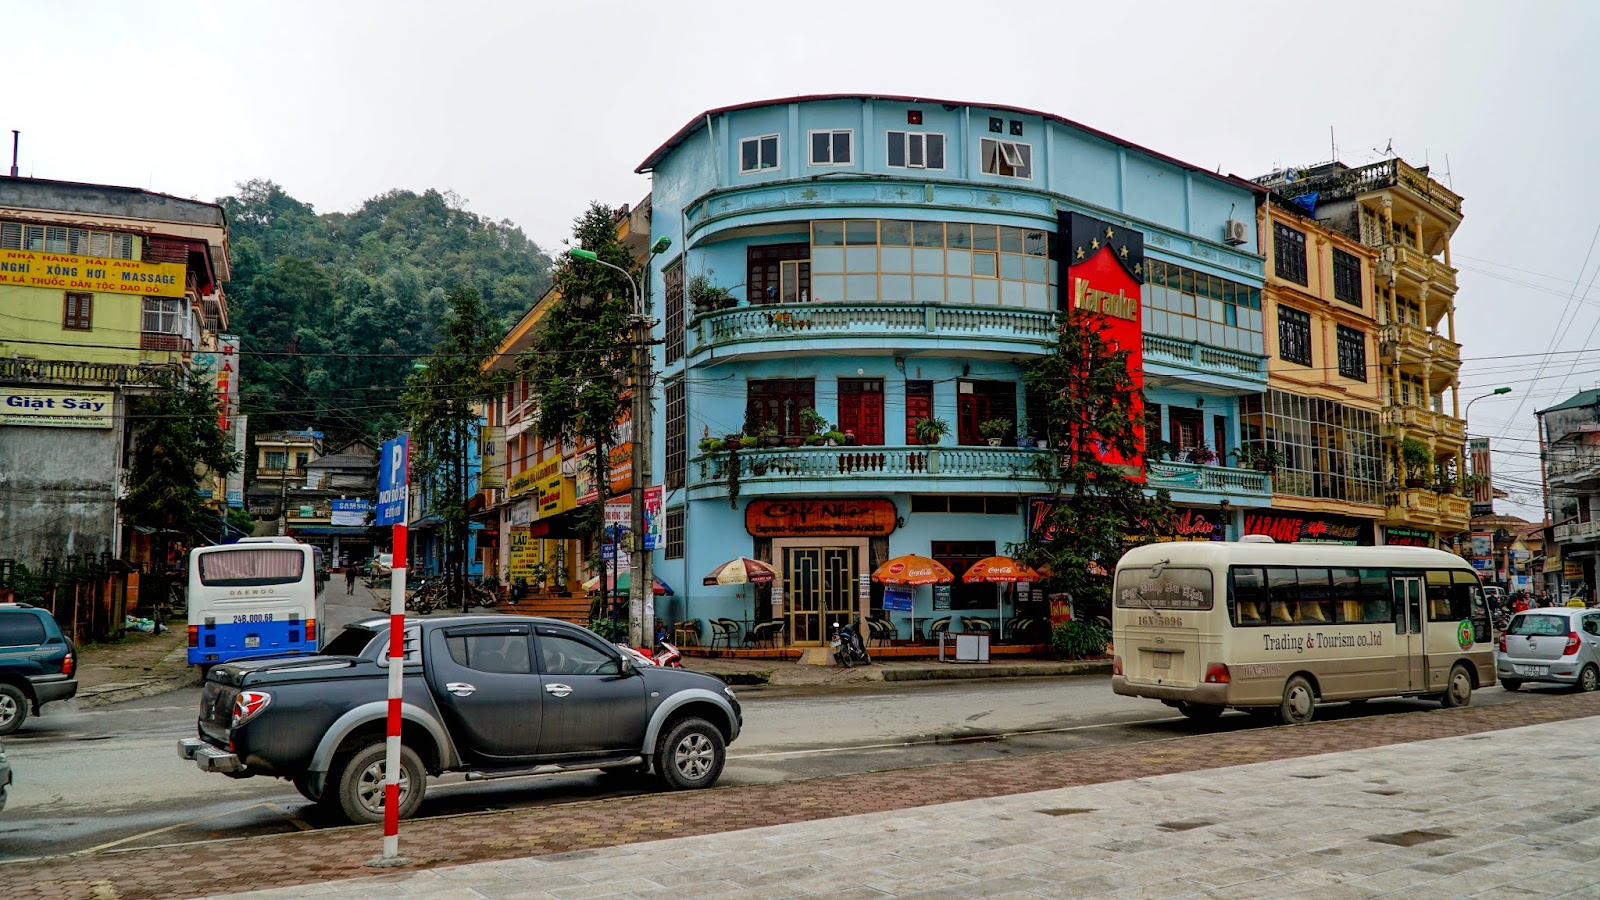 Another part of Sapa town, closer to the hotel I stayed in